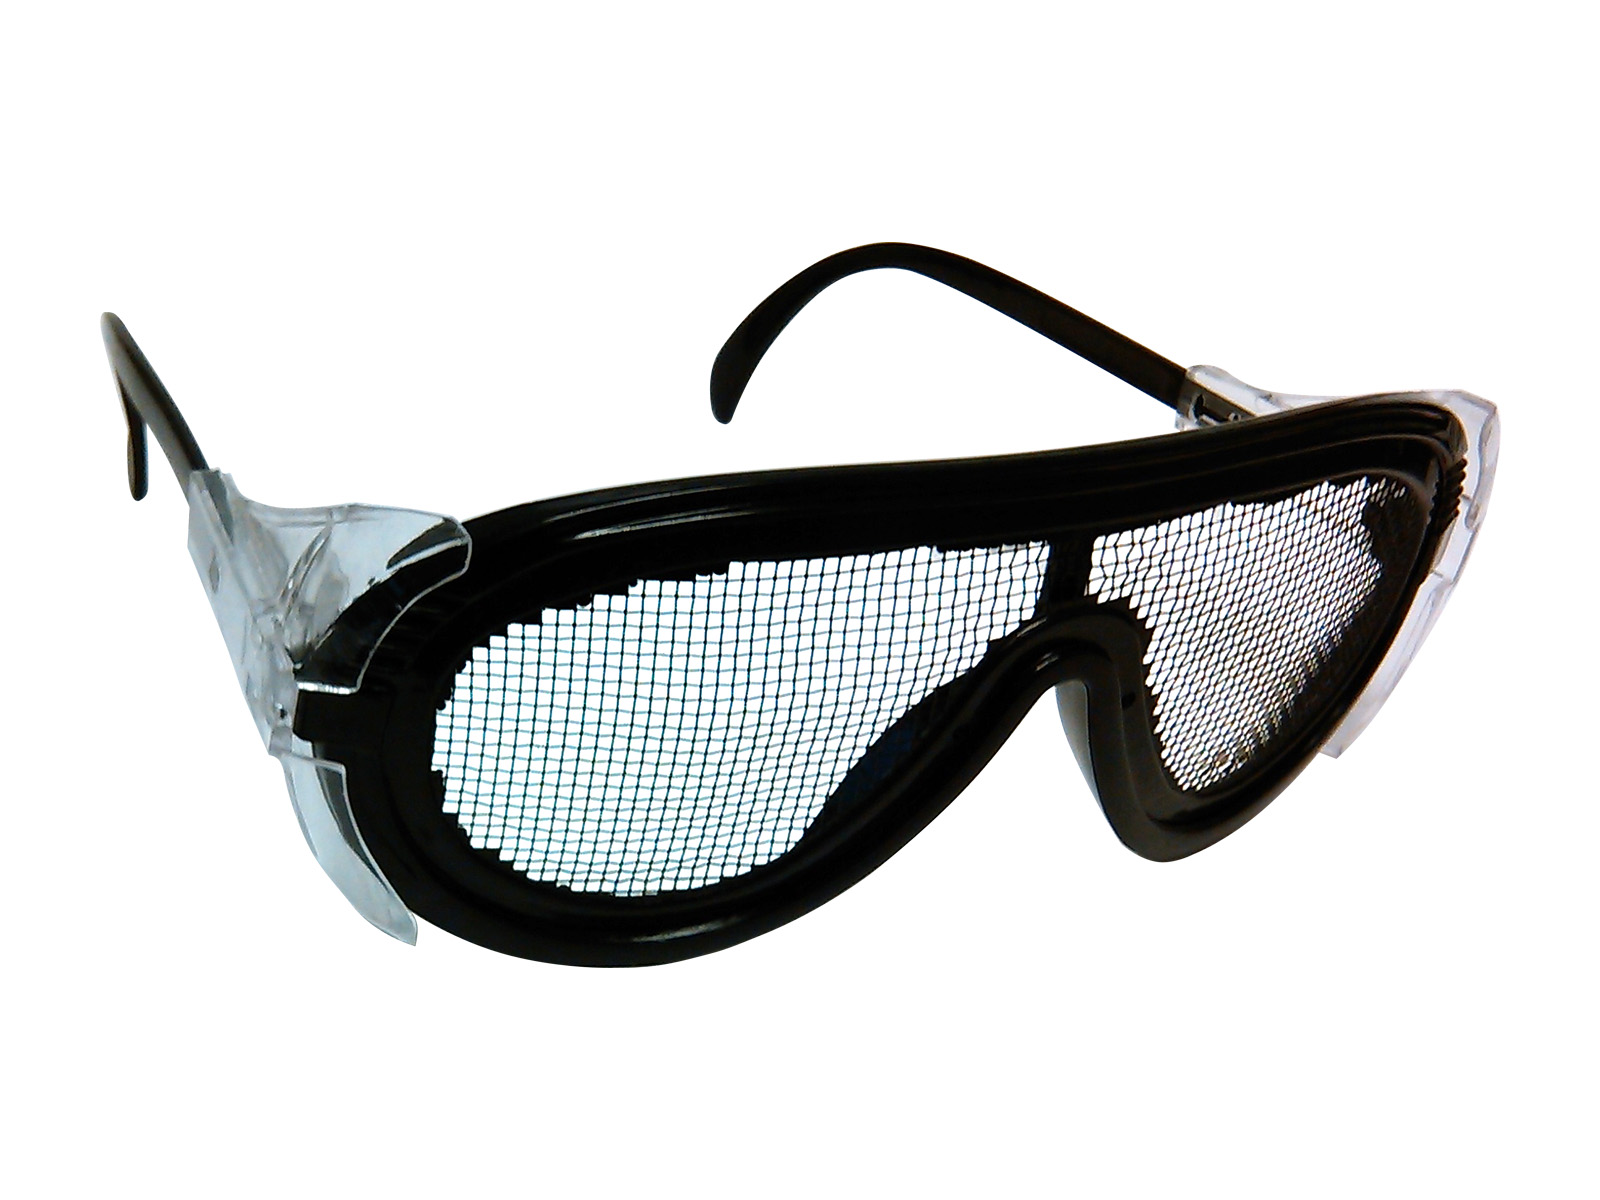 Zenport Safety Glasses SG2635 Wire Mesh Adjustable, Scratch and Fog Free, Eye Protection